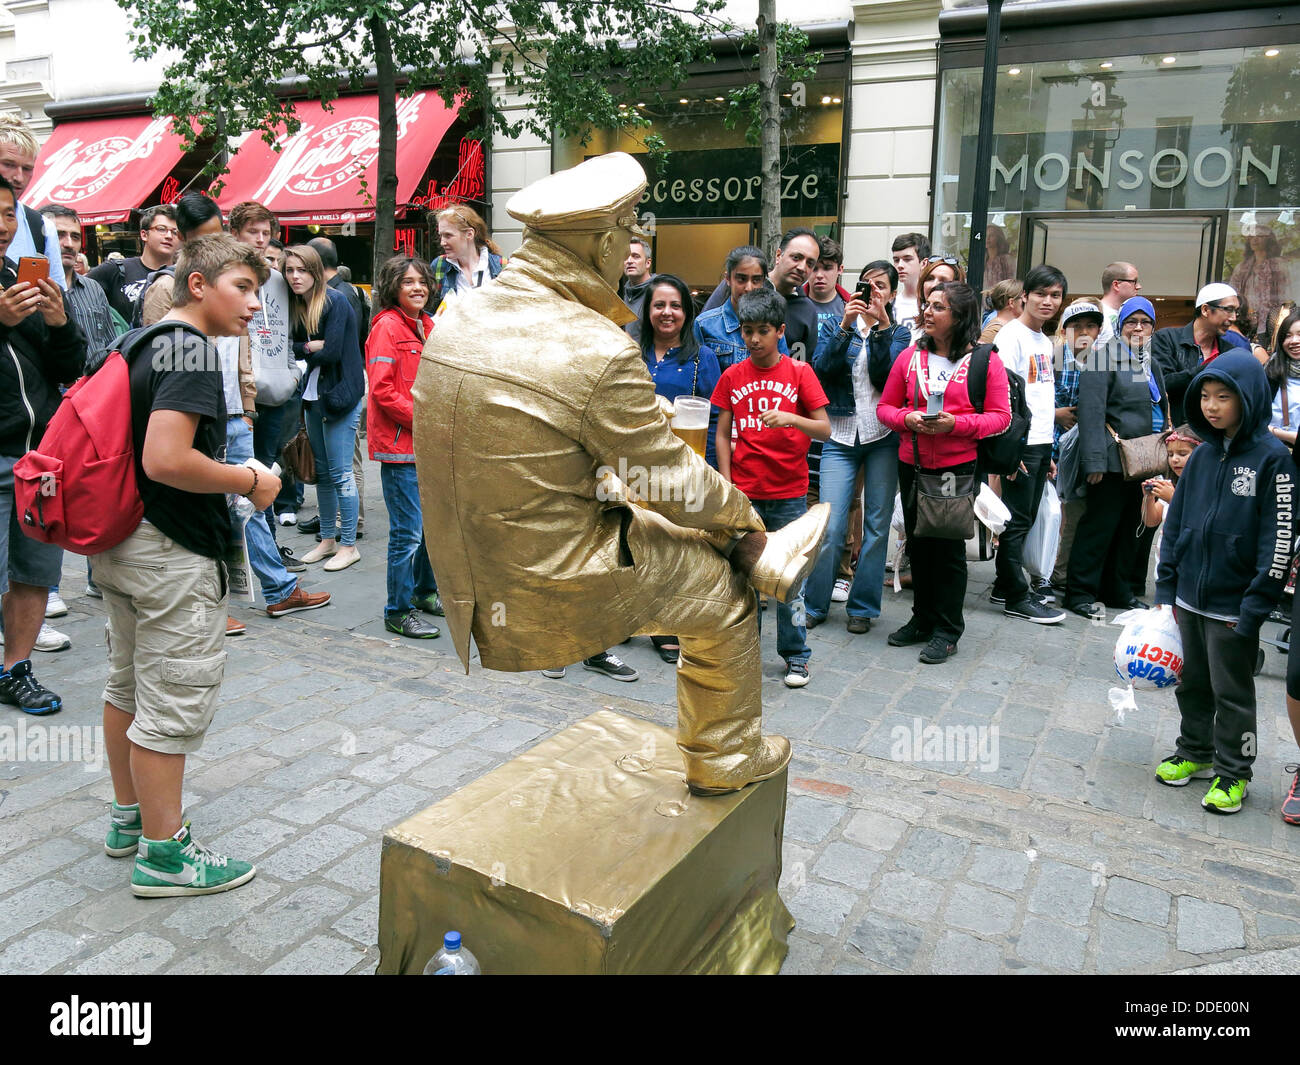 street performer busker dressed in gold sitting on an invisible chair stock photo 59928981 alamy. Black Bedroom Furniture Sets. Home Design Ideas